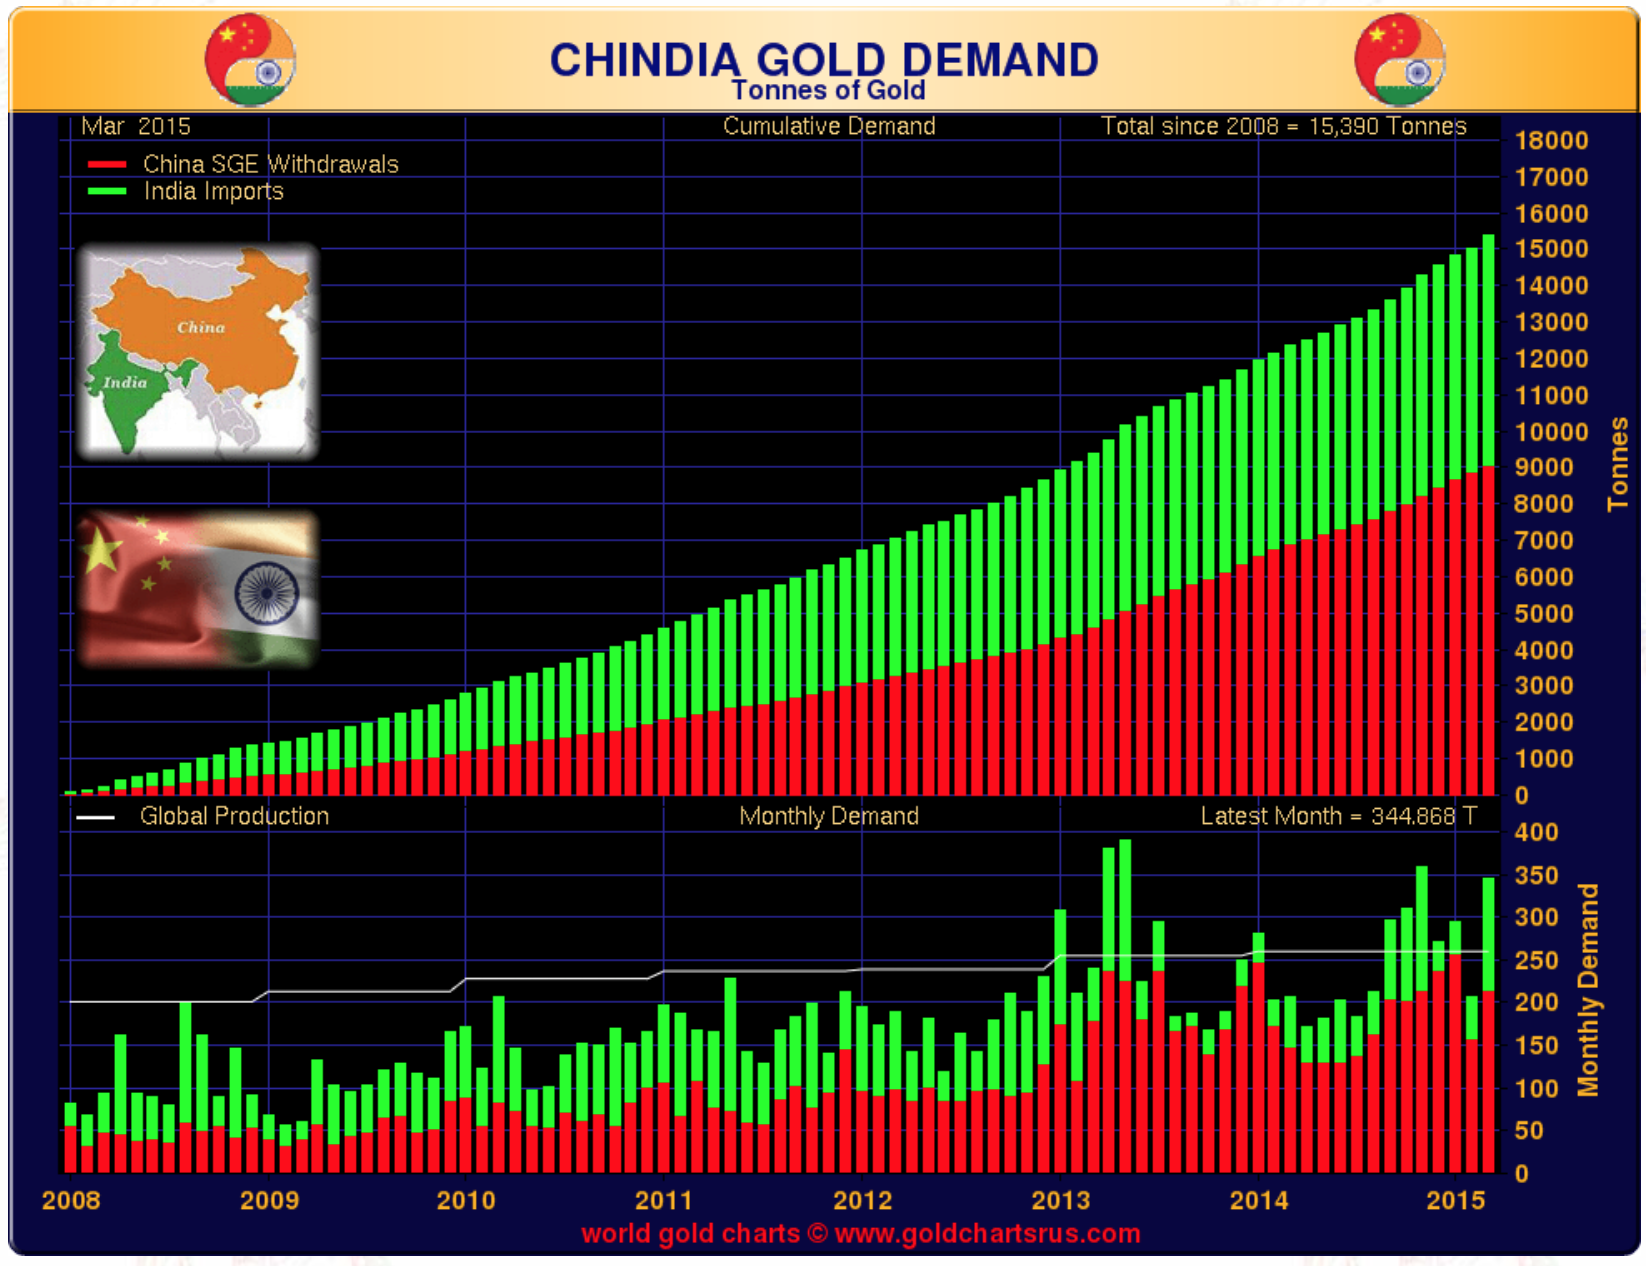 Chindia Gold Demand